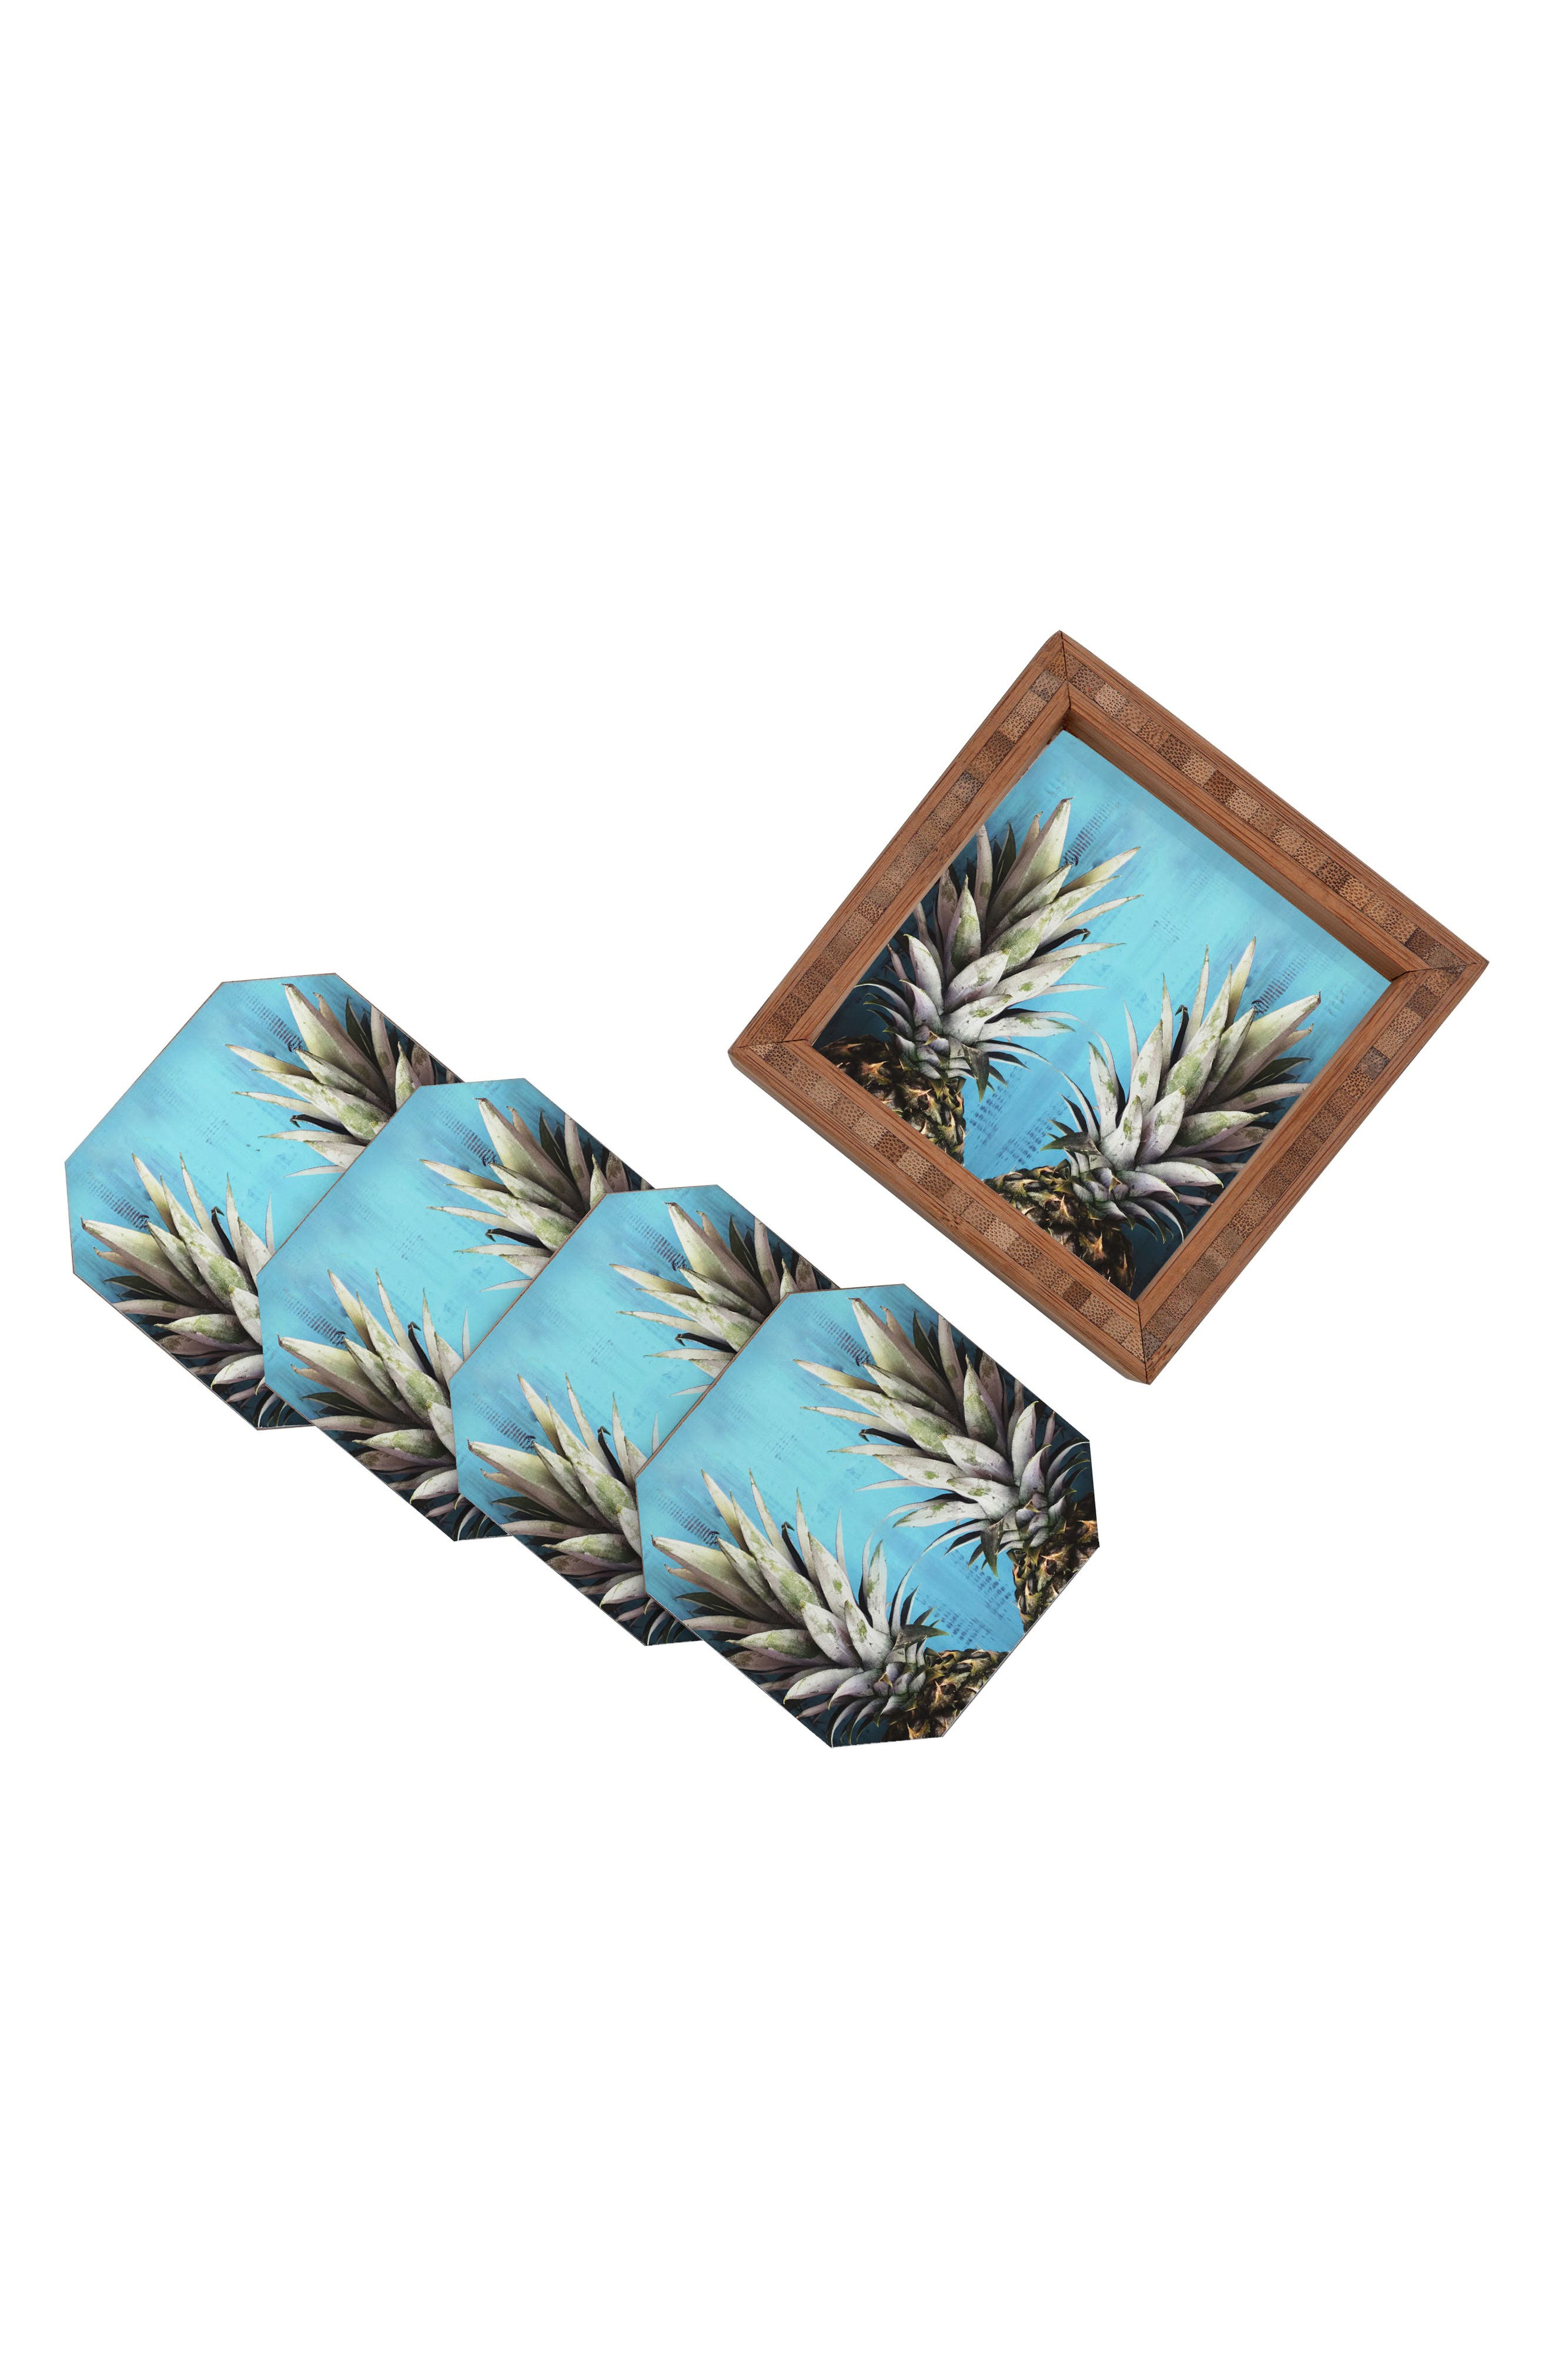 How About Them Pineapples Coaster Set of 4 Coasters,                         Main,                         color, 400